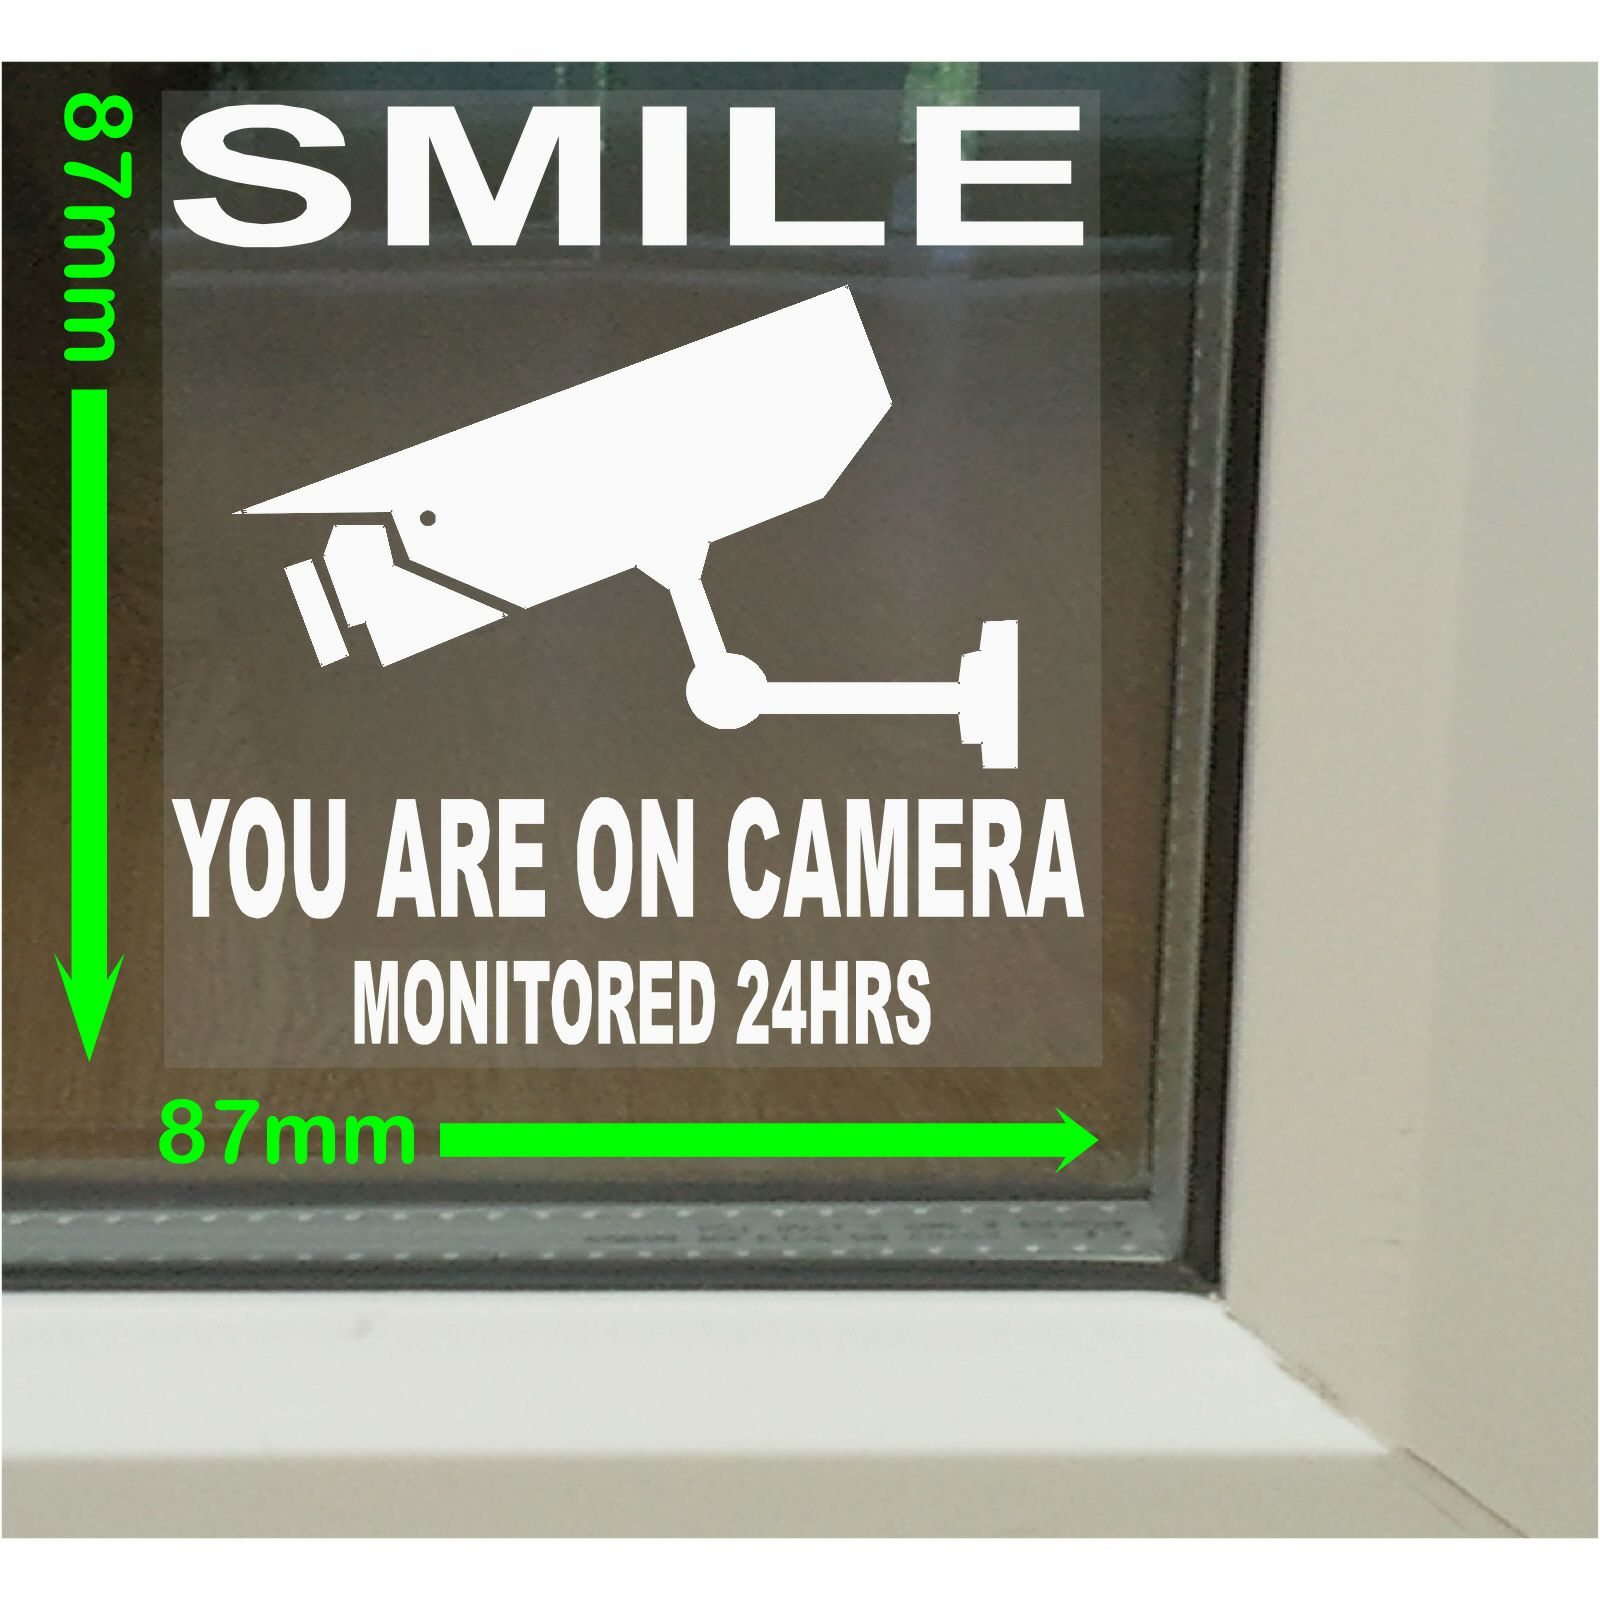 1 x CCTV Smile Closed Circuit Television Stickers for ...